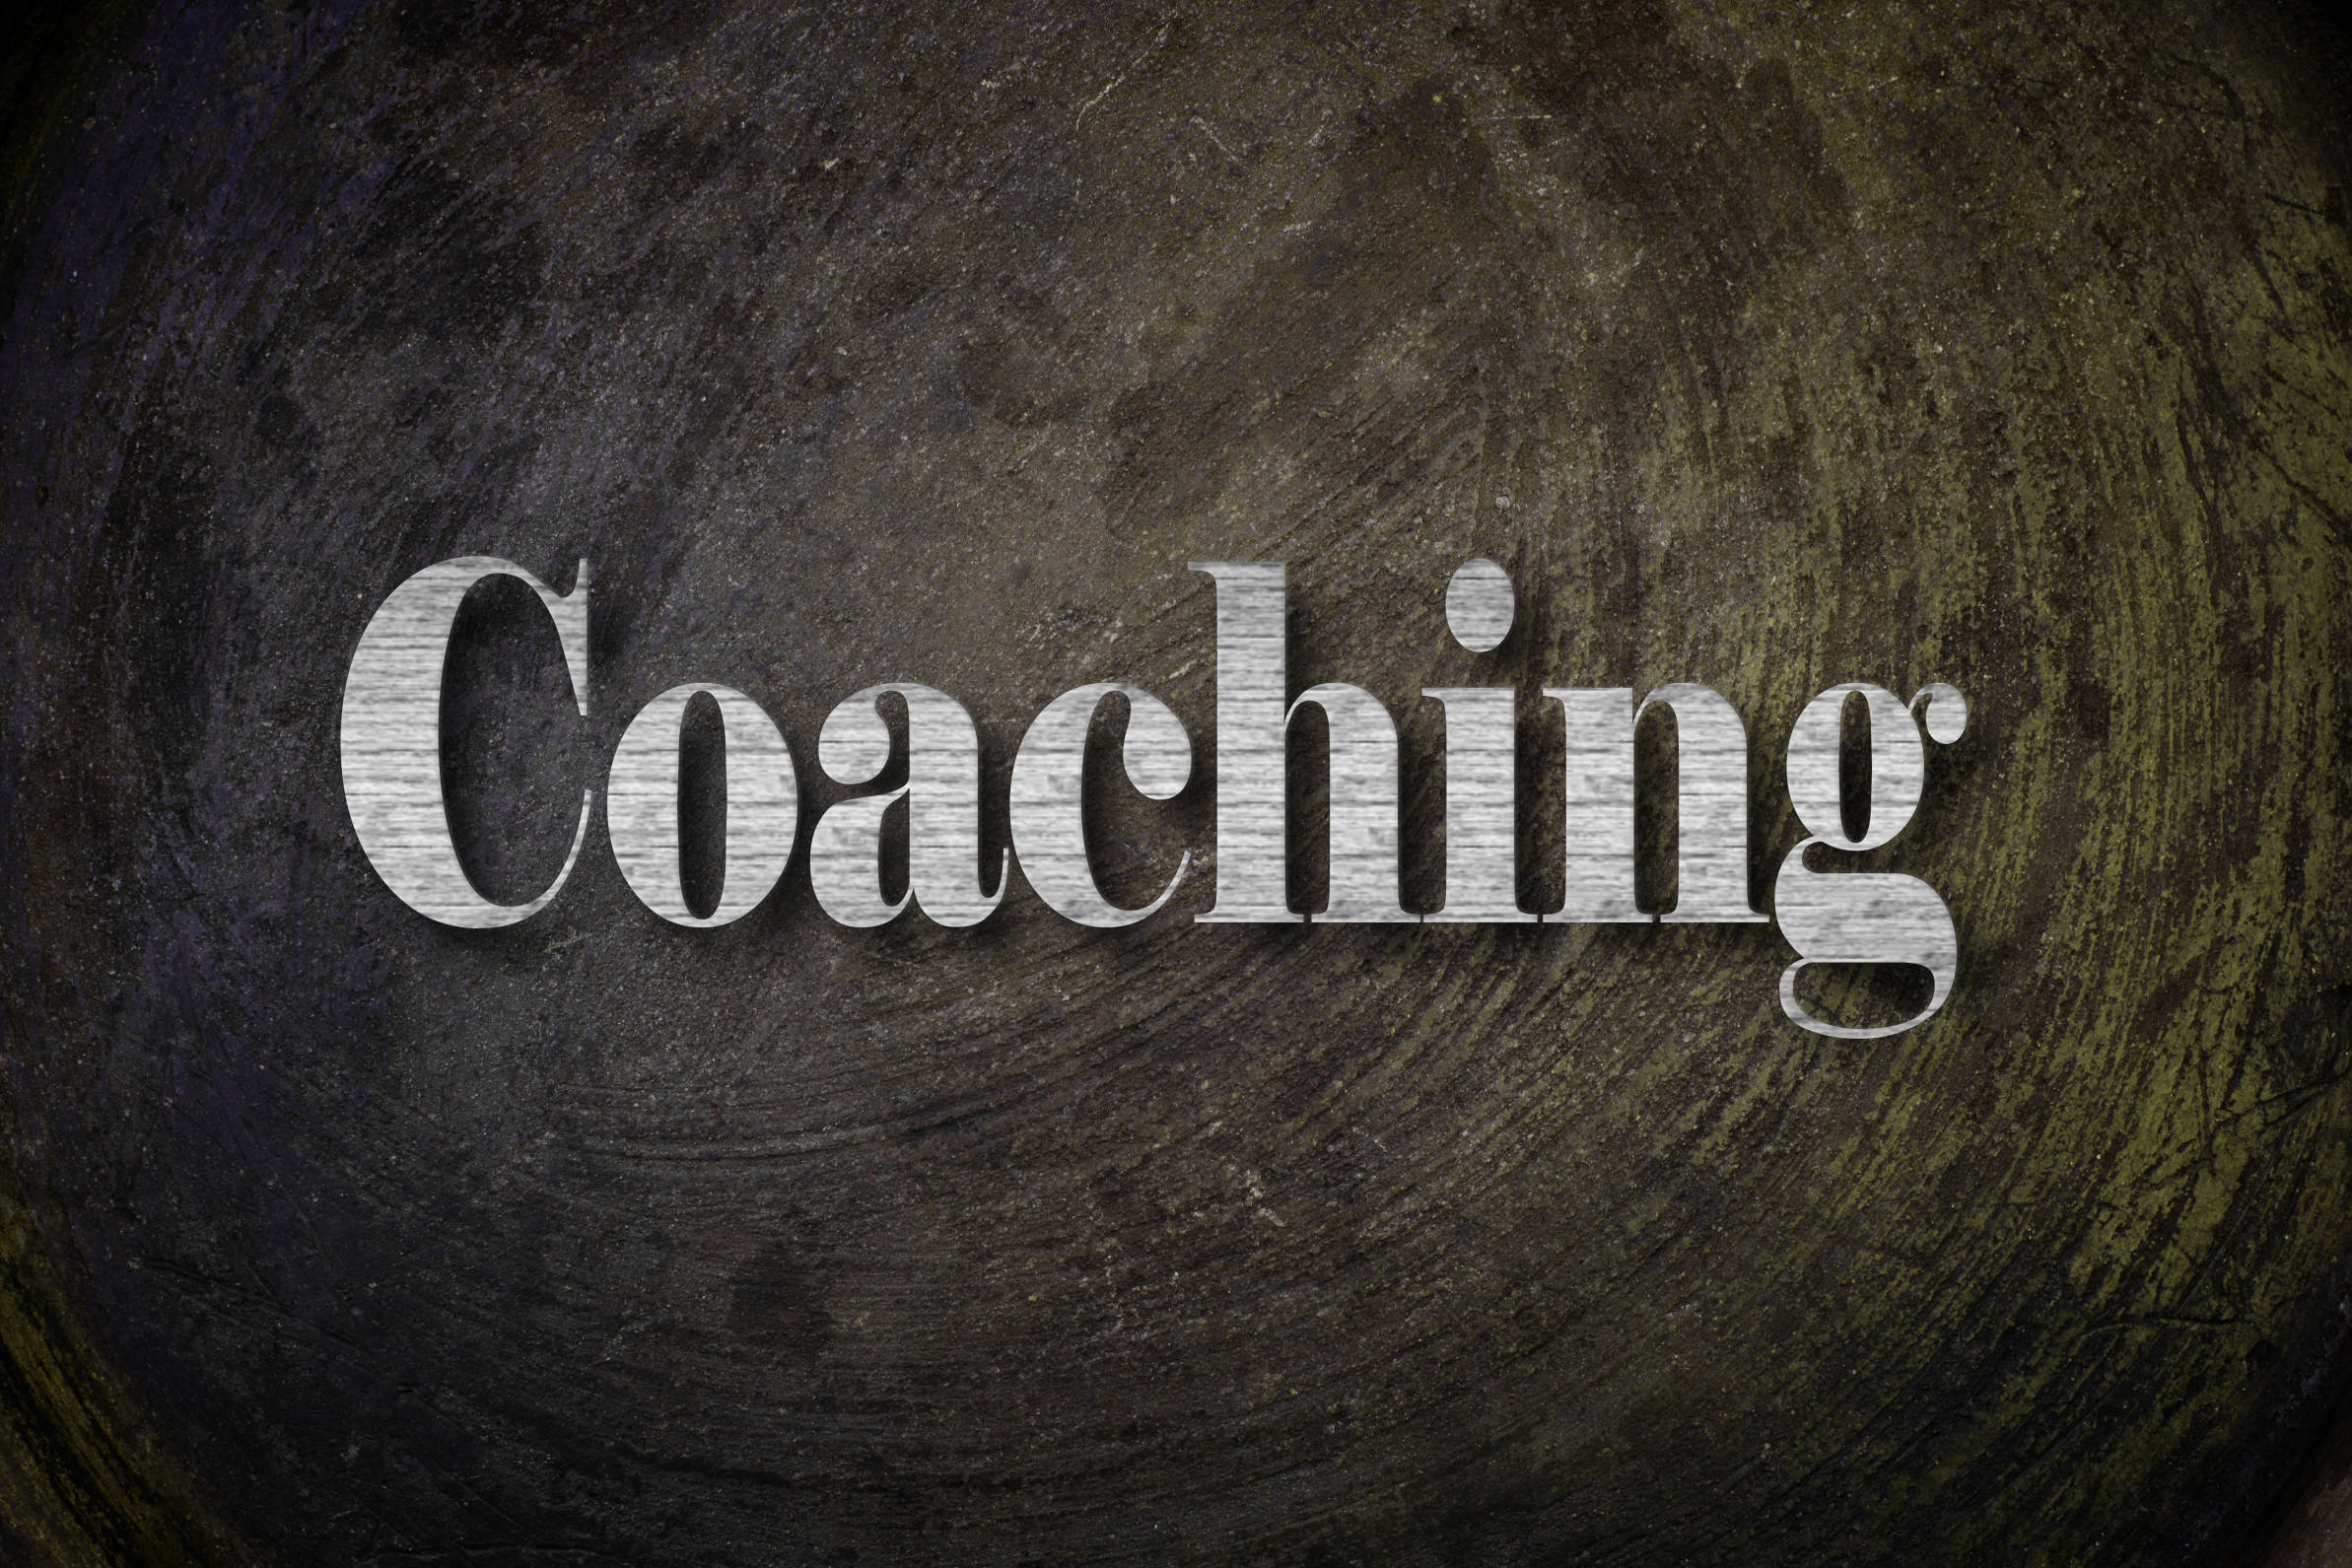 Coaching Text on Background